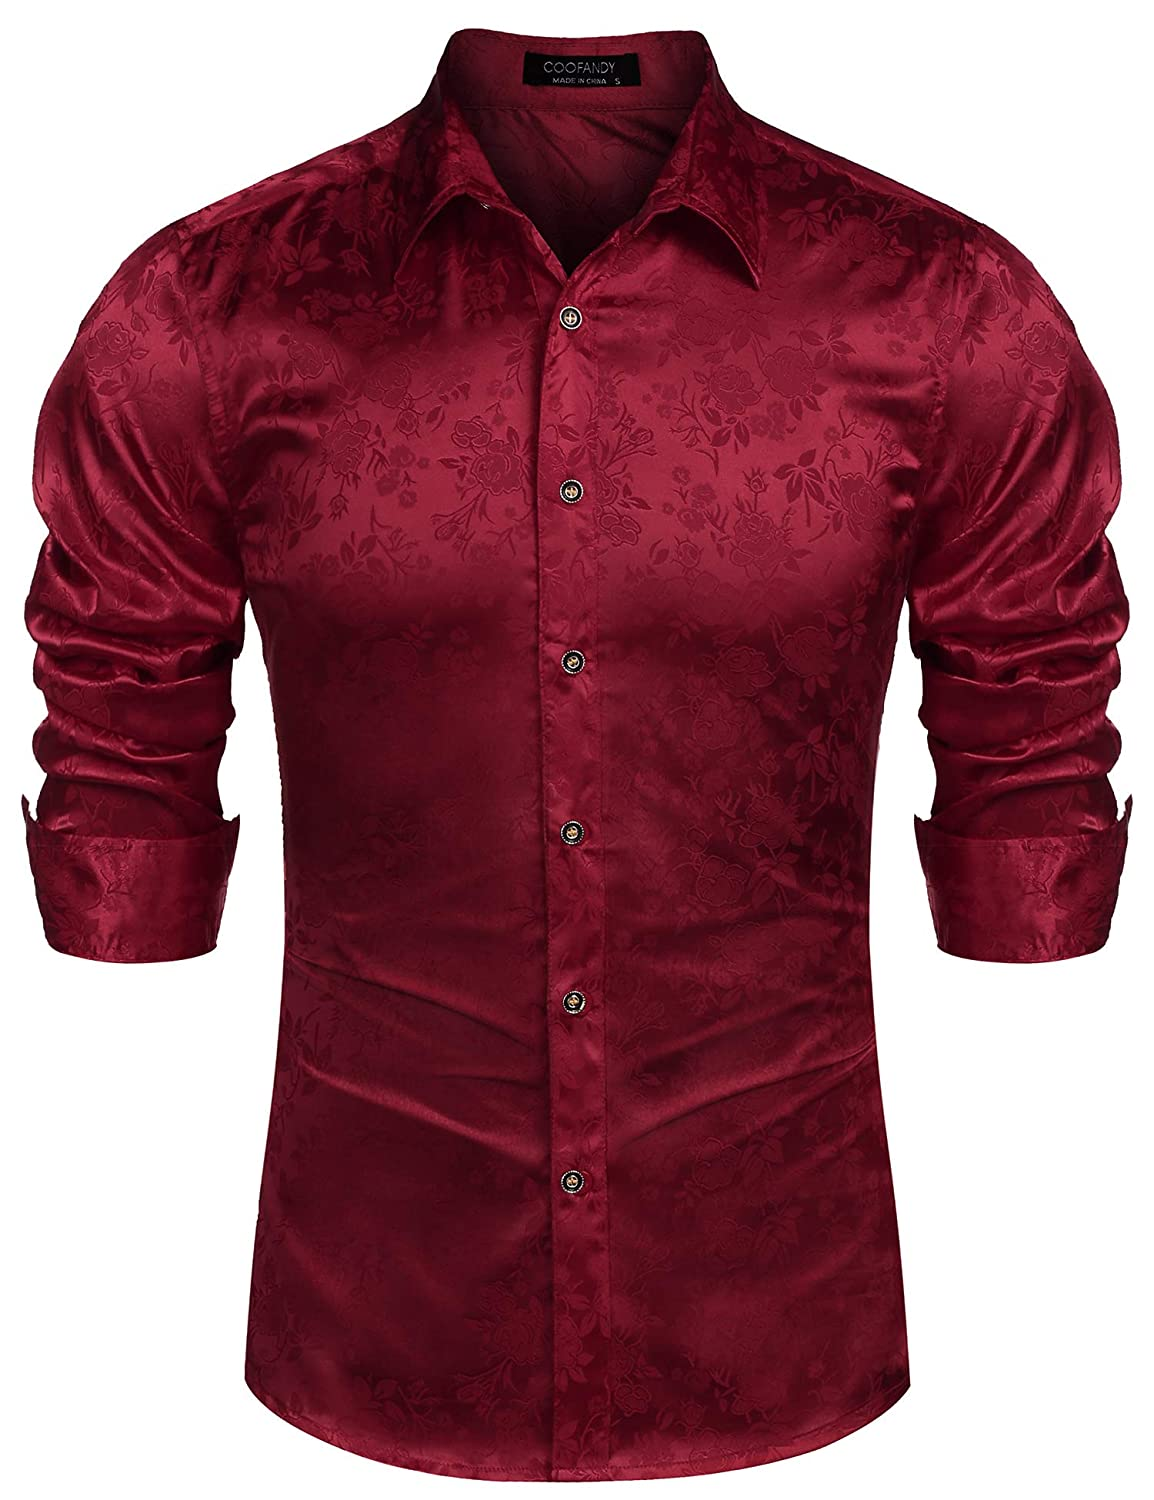 COOFANDY Mens Floral Rose Printed Long Sleeve Dress Shirts Prom Wedding Party Button Down Shirts